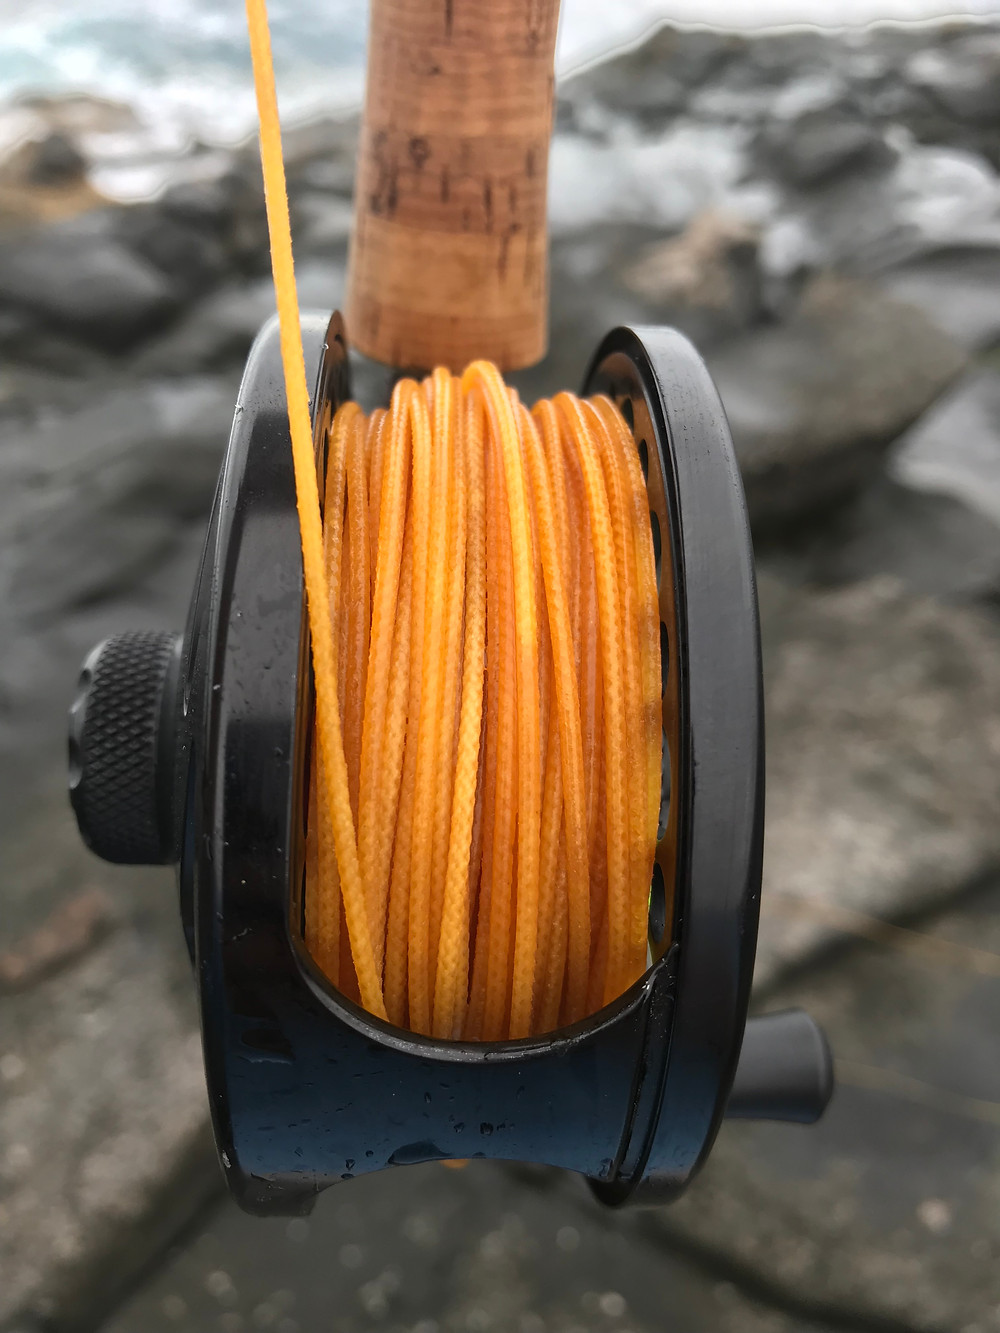 Silk fly lines generally have less diameter than synthetic fly lines